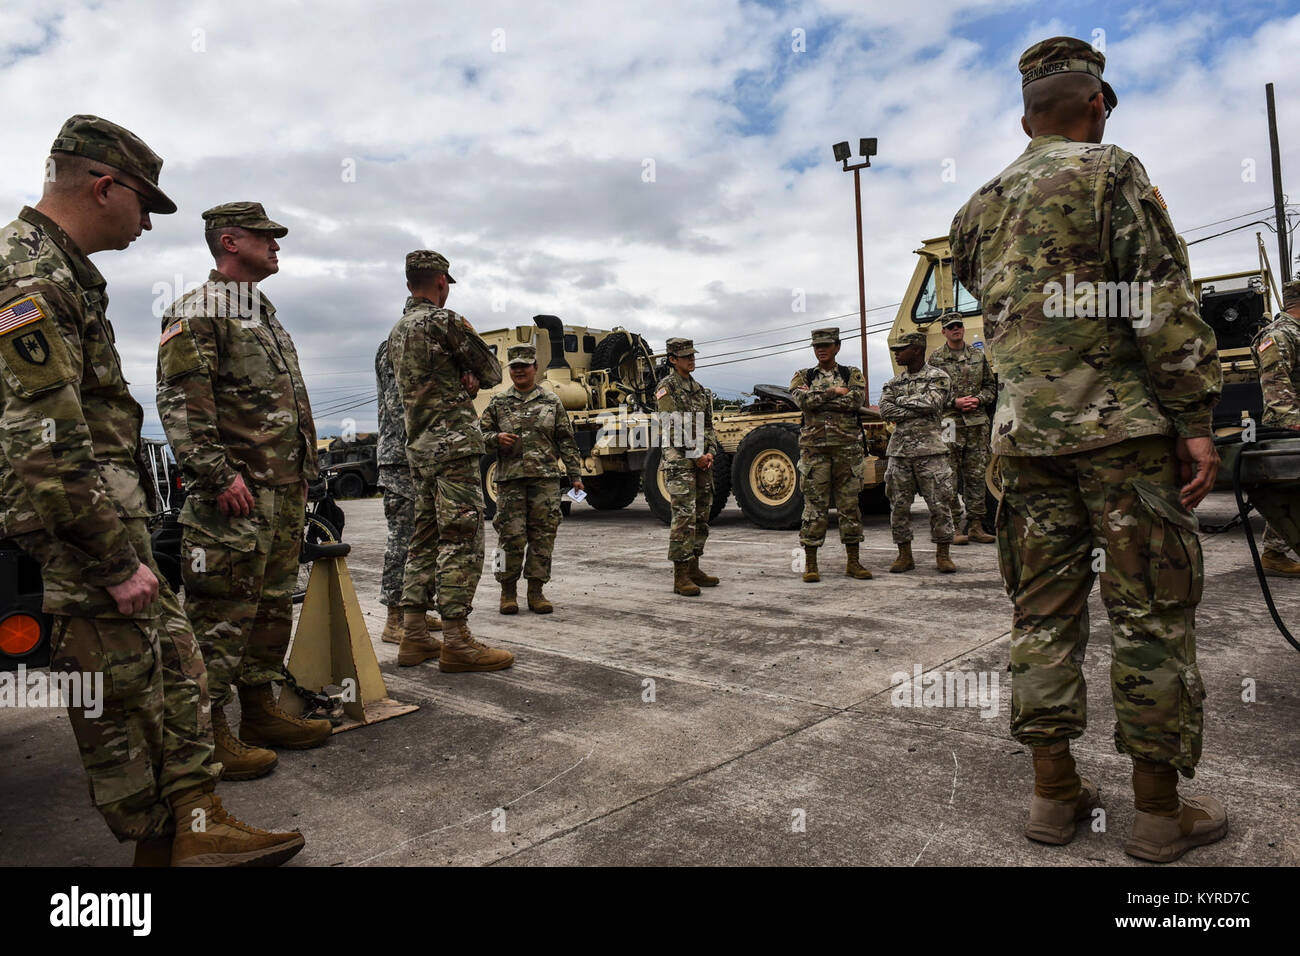 Service members from Joint Task Force-Bravo's Medical Element, 1st Battalion, 228th Aviation Regiment, Army Forces Stock Photo